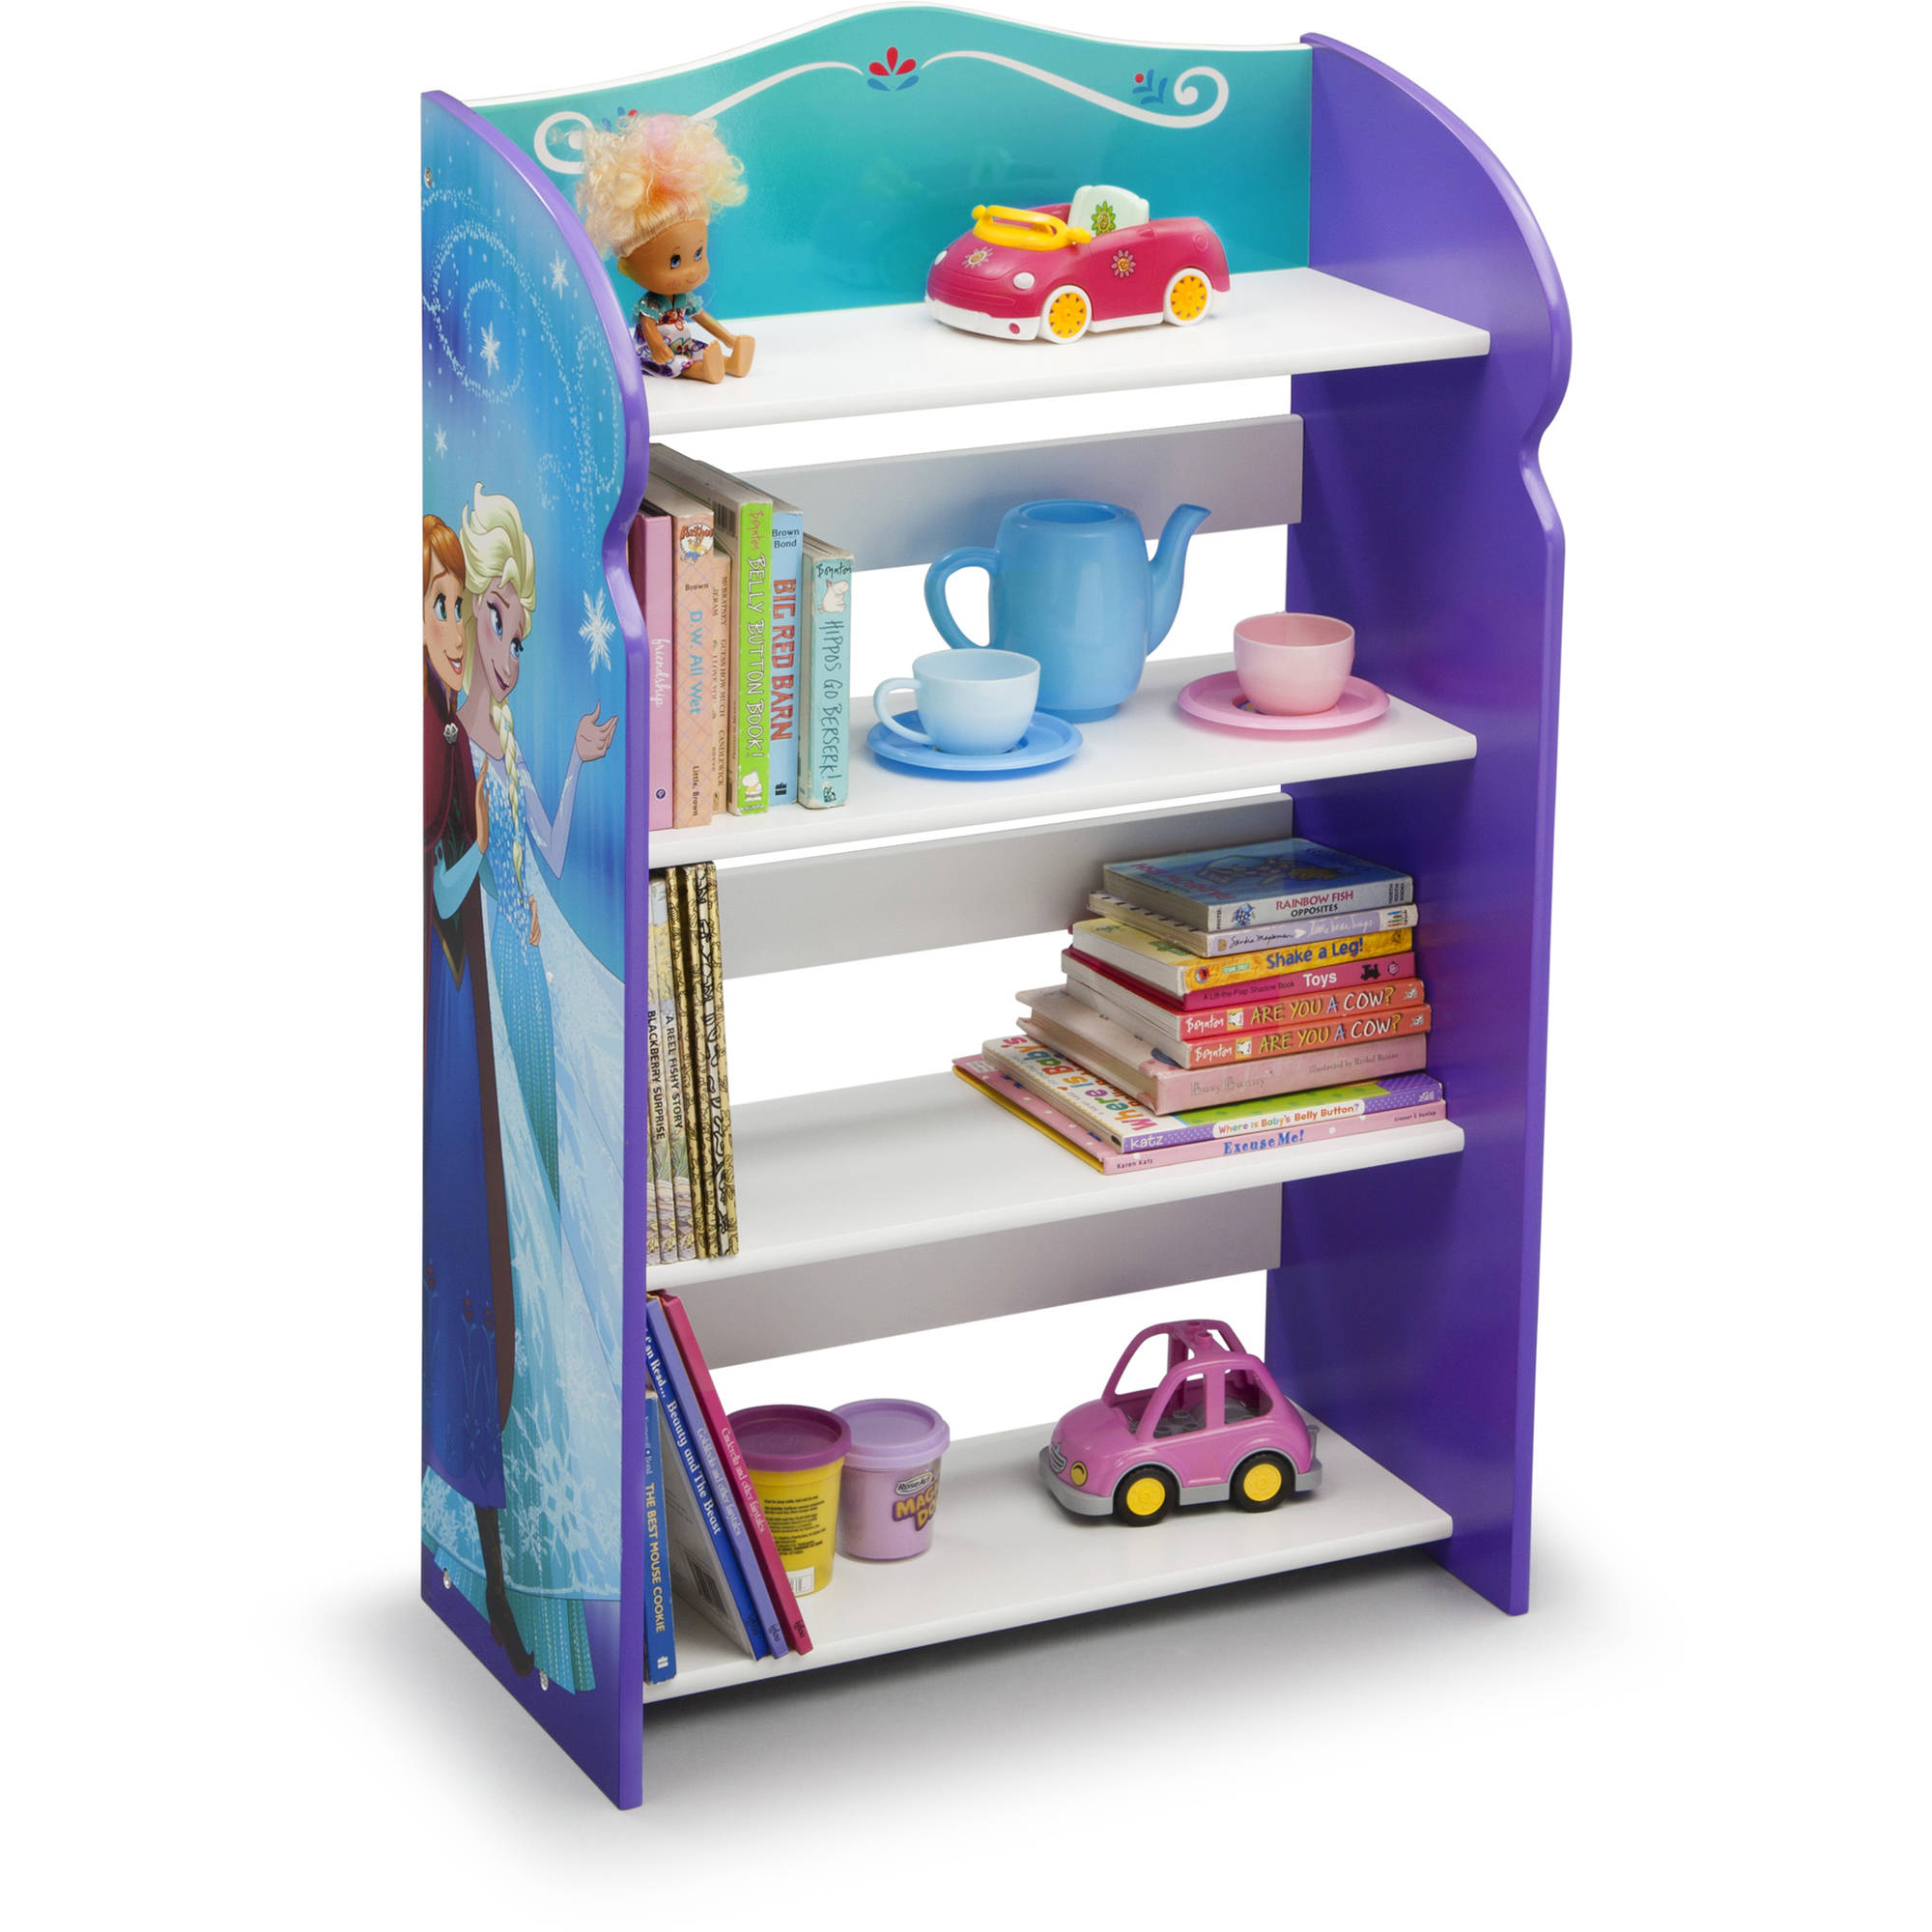 pin hensvik and girls schrank nursery regalkombination wei bookcase room shelves